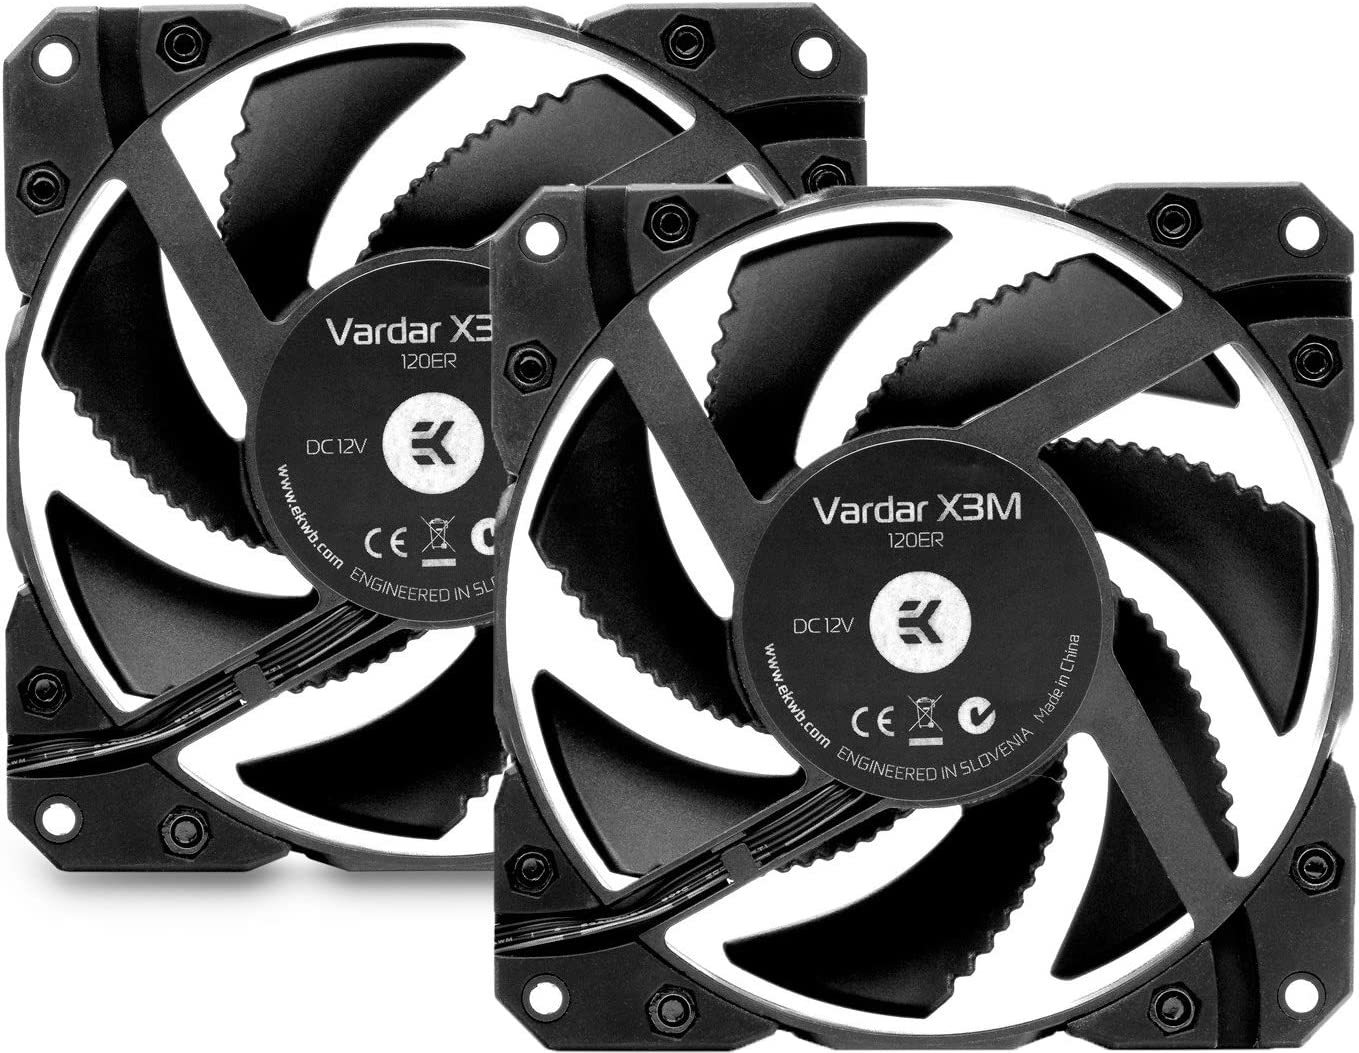 EK-Vardar X3M 120ER (500-2200 RPM), Color Negro: Amazon.es ...